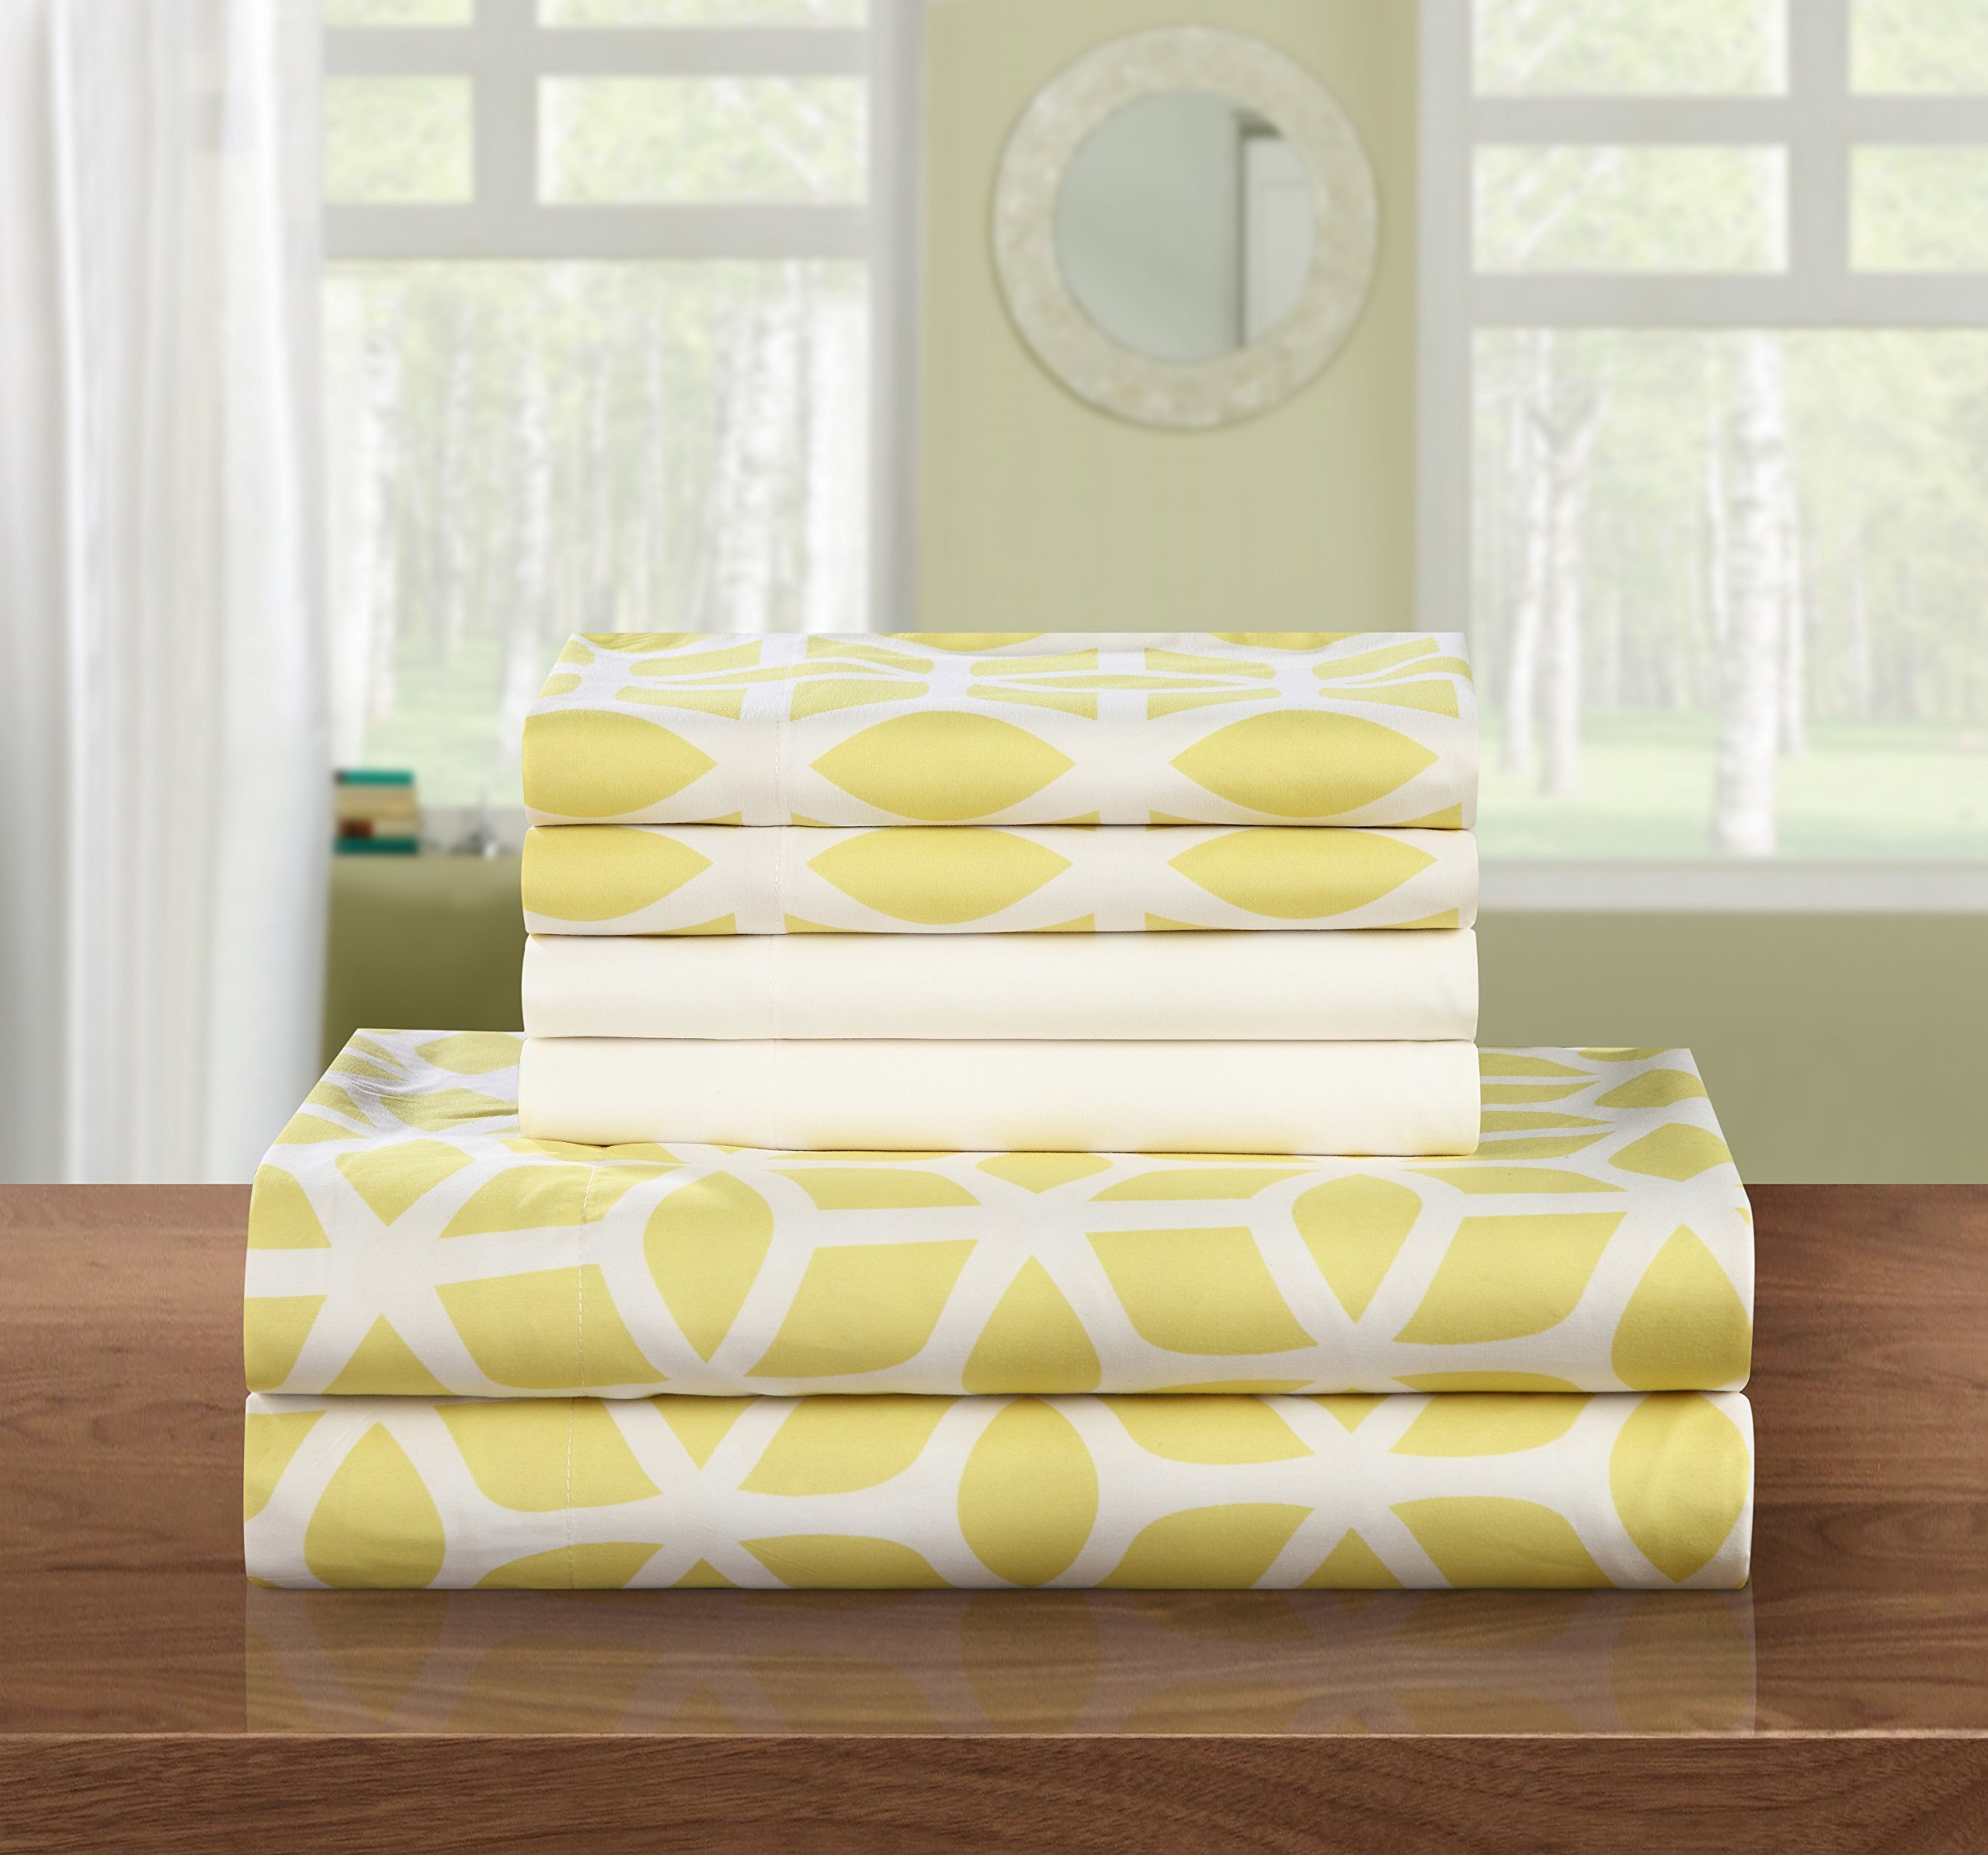 Chic Home 6 Piece Bailee Supersoft Brushed Microfiber Deep Pocket Striped Pattern Sheet Set with 2 Bonus Pillow Cases, Queen, Yellow